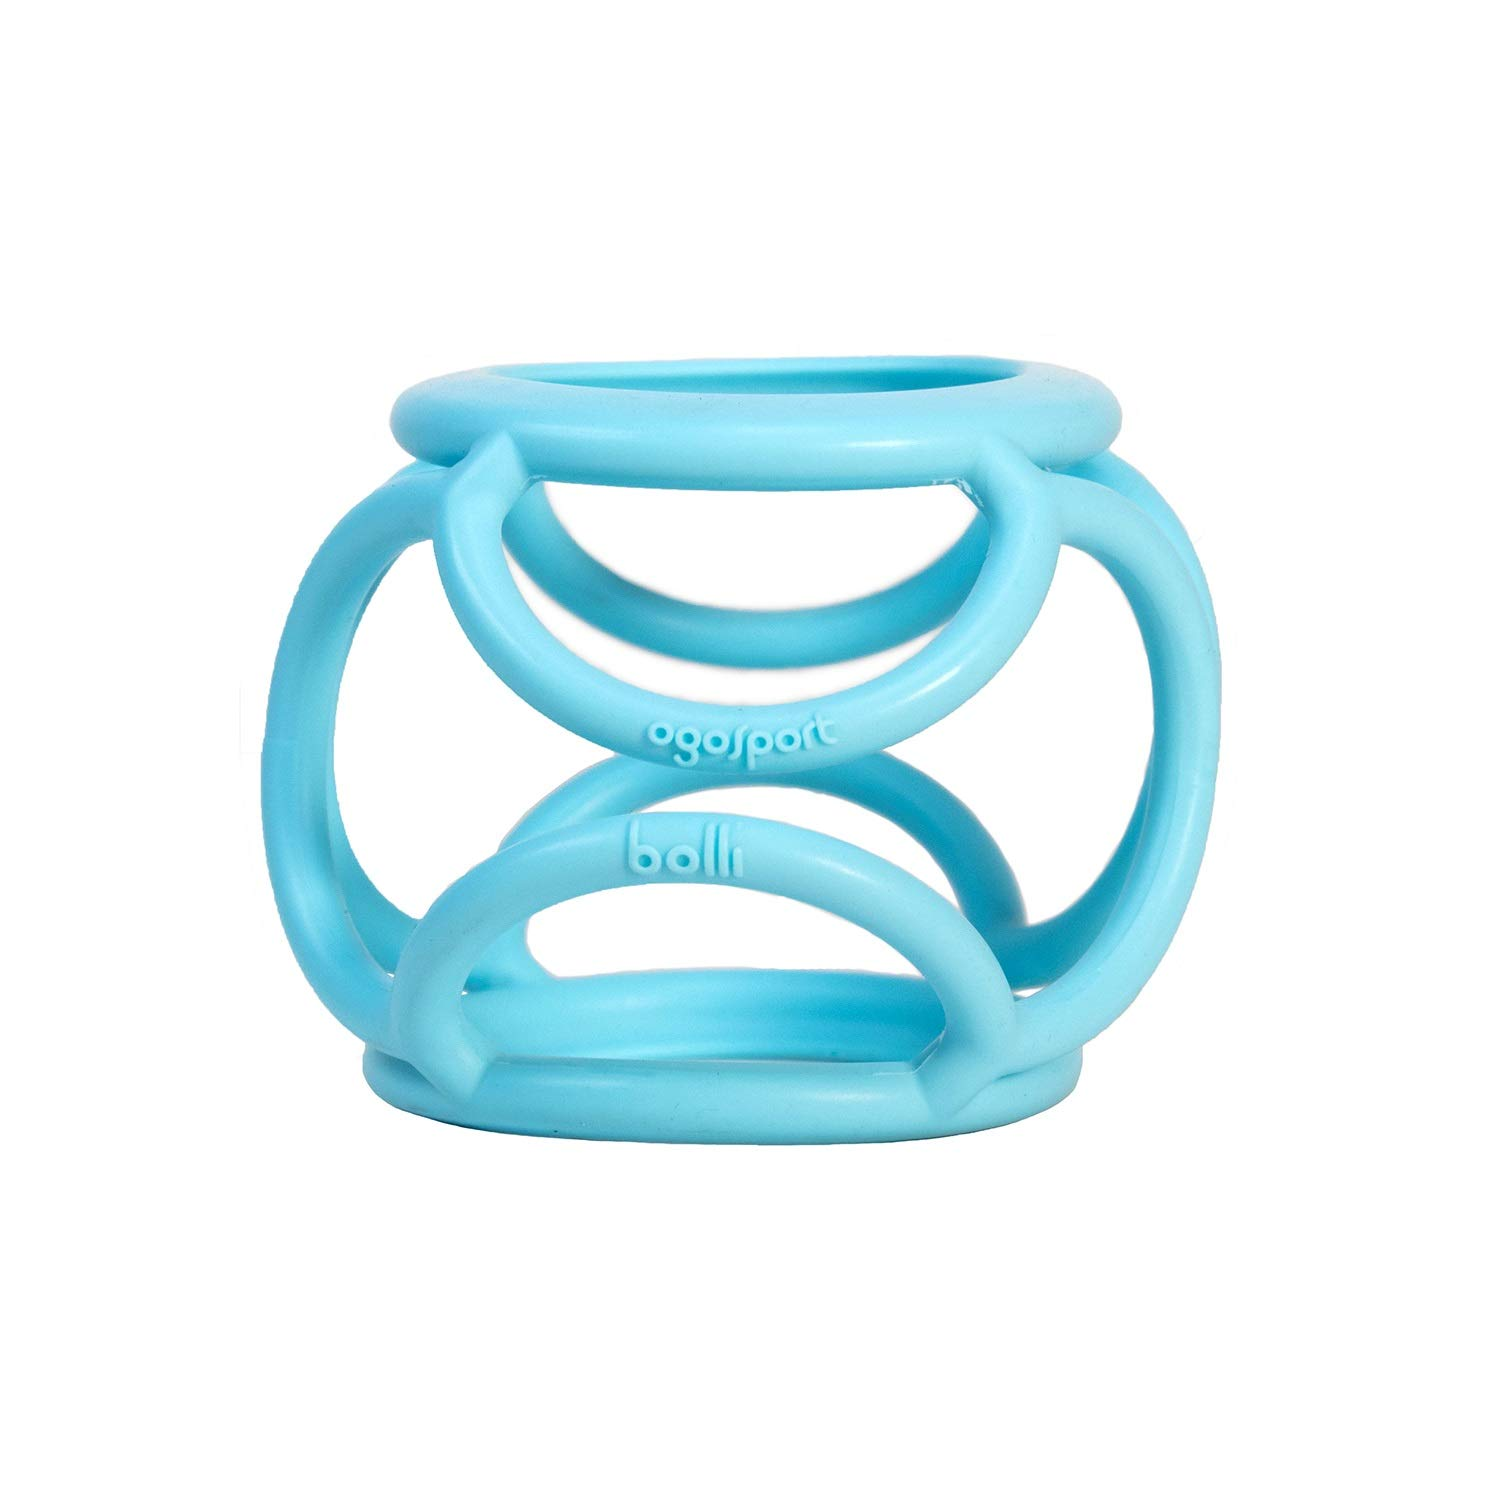 PVC Grippi Bottle Ball Blue OgoSport Baby Bottle Holder and Sensory Teether Toy for Babies Ages 6 Months and Up BPA and Phthalate-Free, Made from Safe Non-Toxic Stretchy Silicone